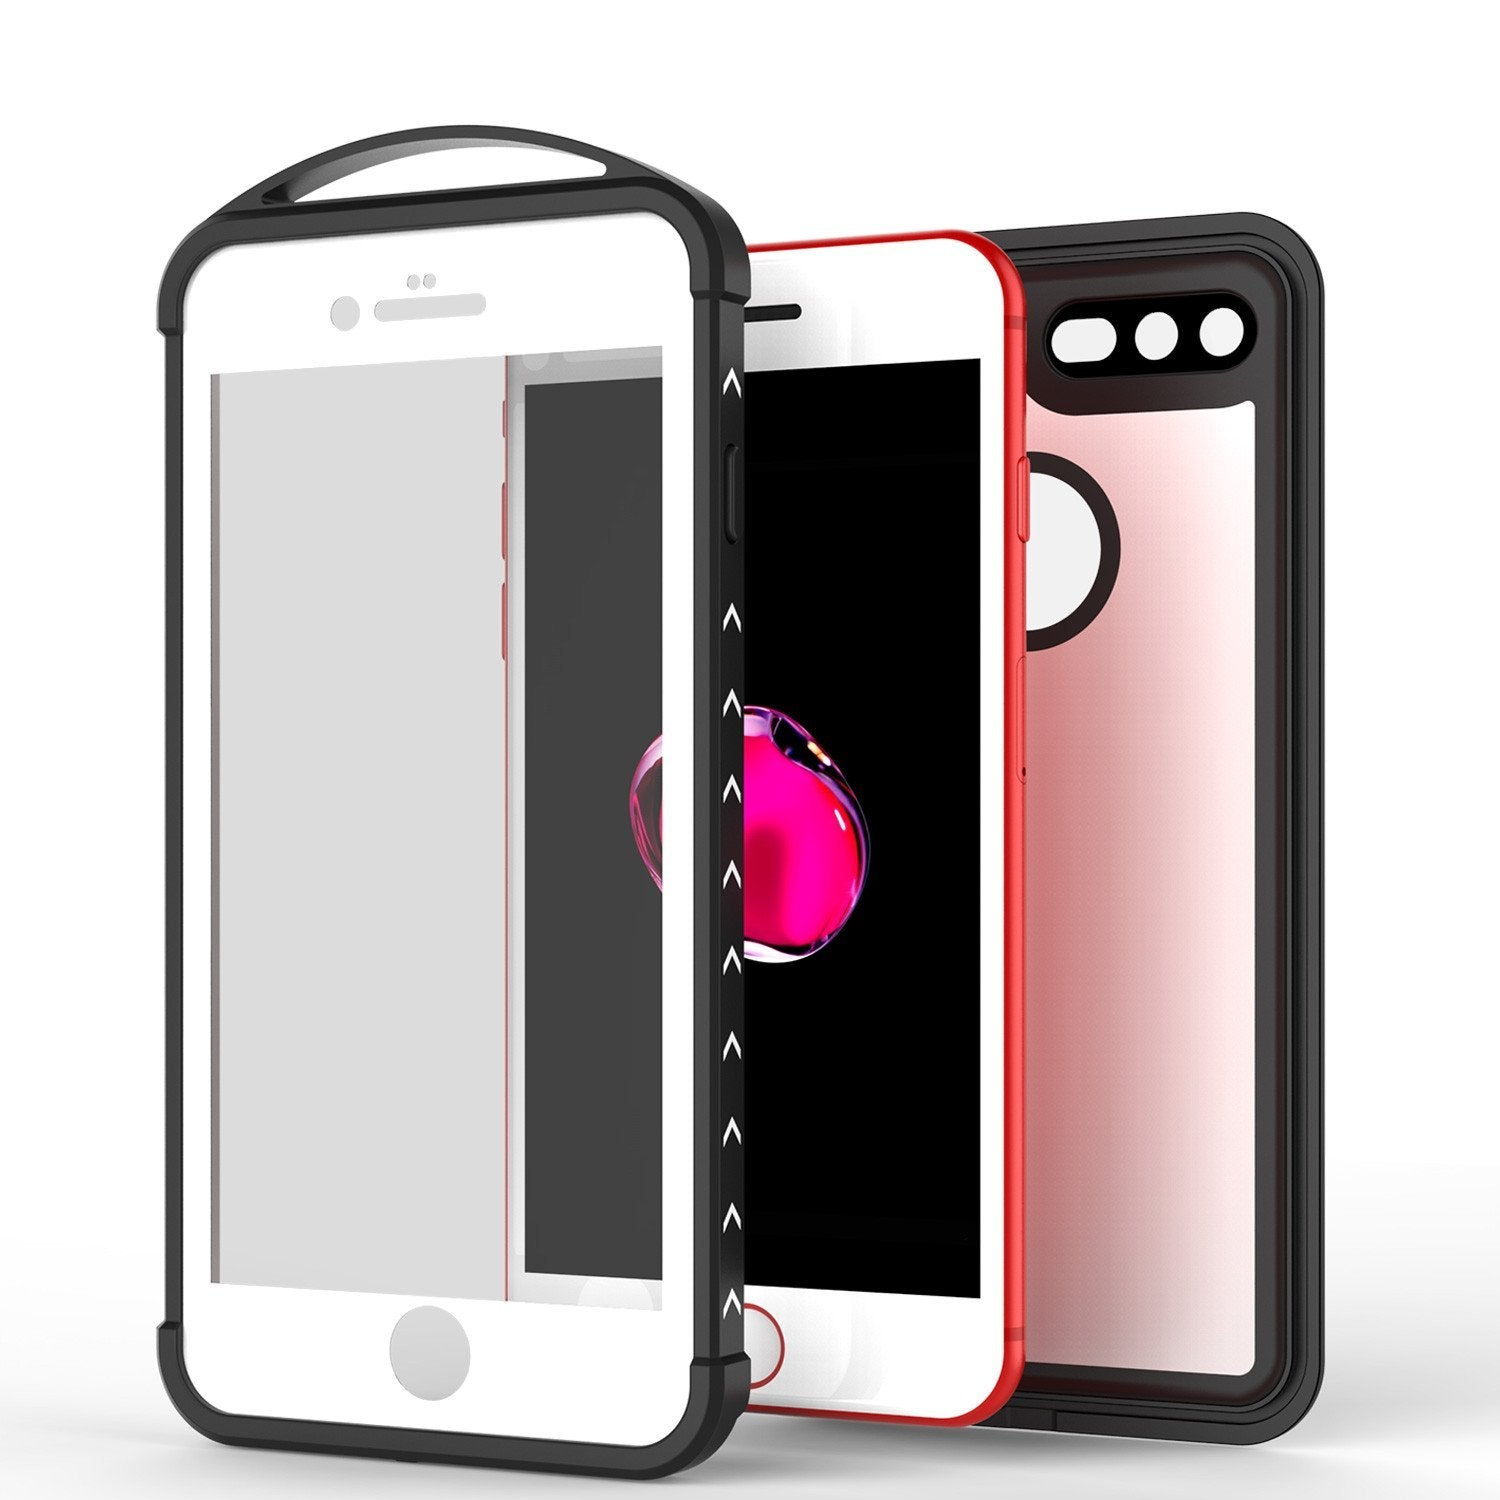 iPhone 8+ Plus Waterproof Case, Punkcase ALPINE Series, CLEAR | Heavy Duty Armor Cover